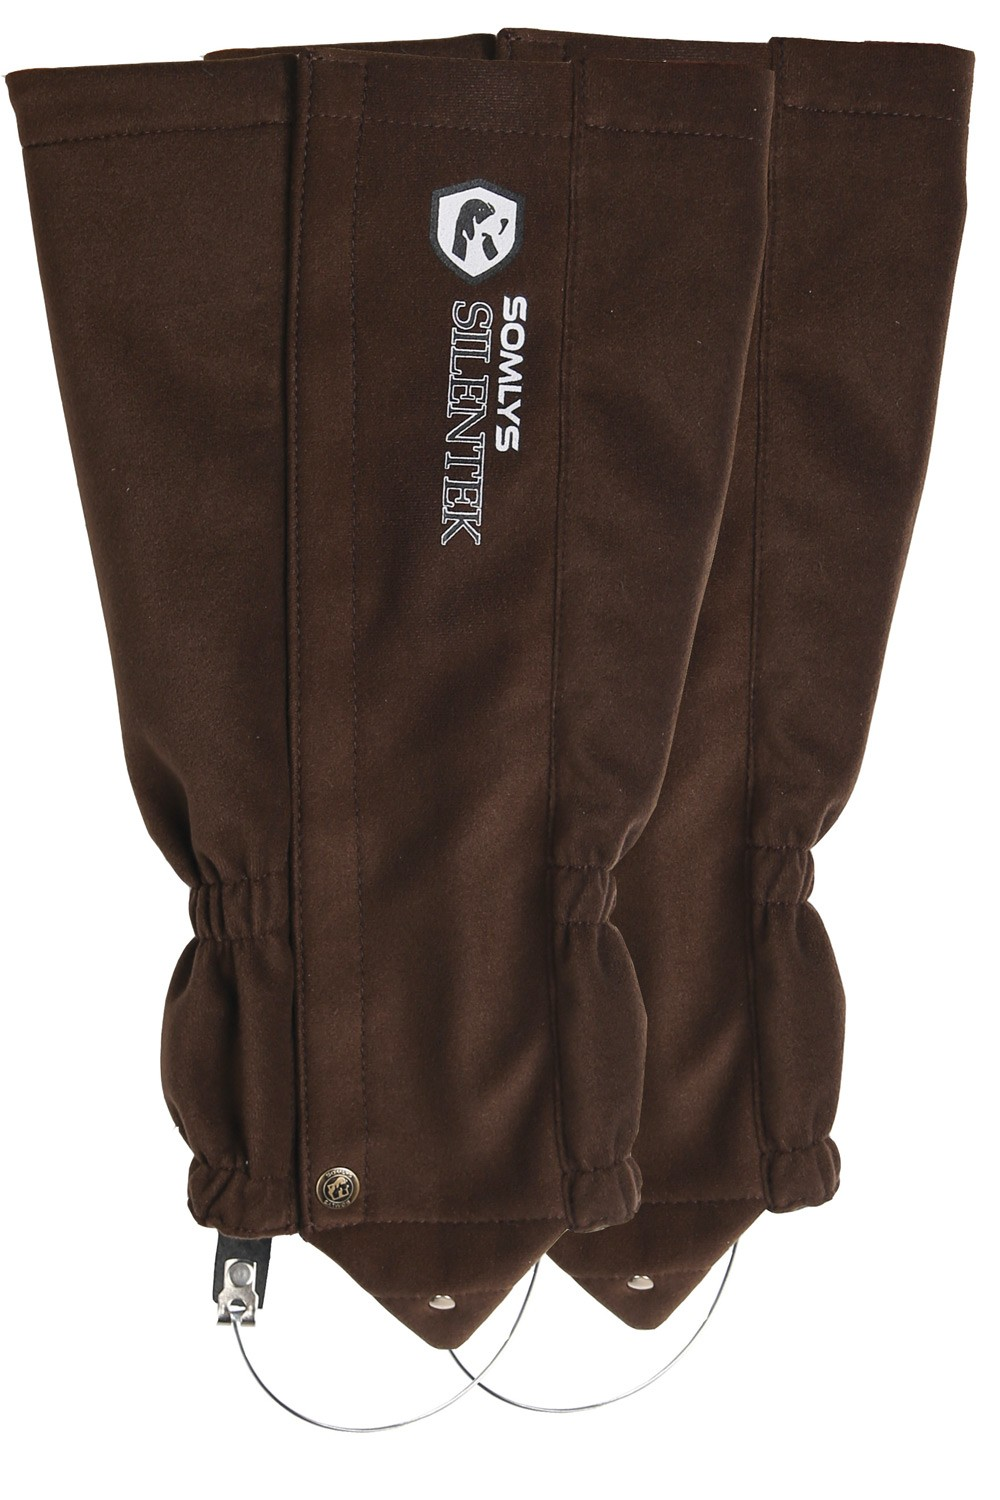 Guêtres de chasse somlys 795, made in chasse - equipement...